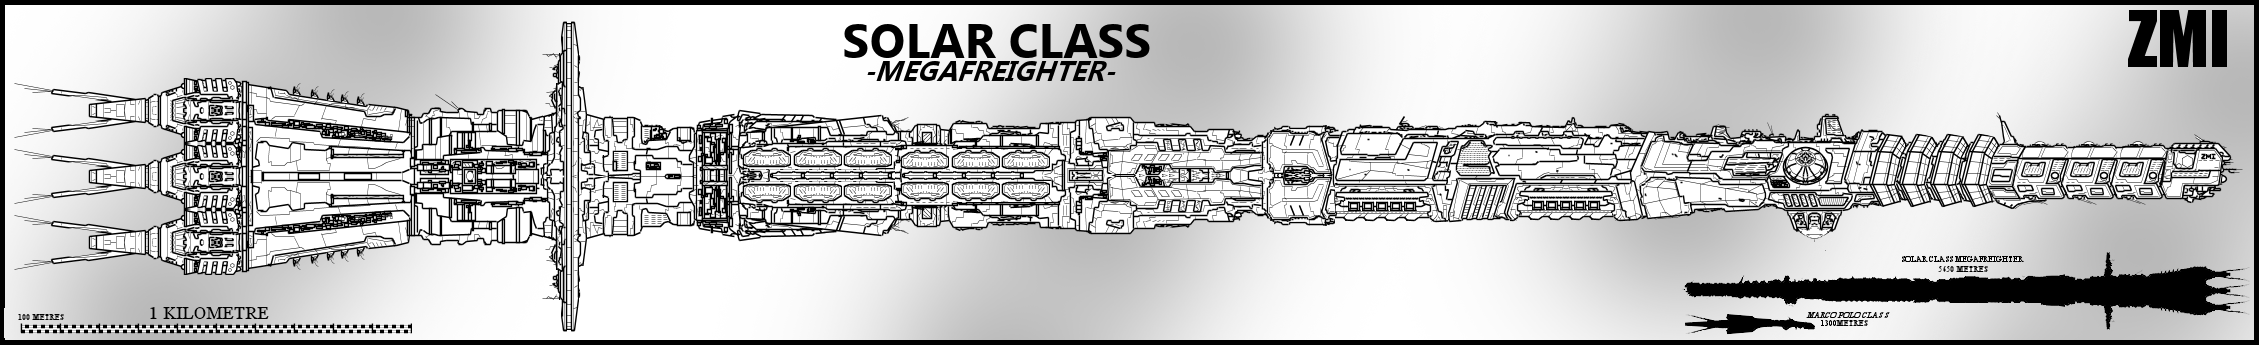 Solar Class Megafrieghter by Lineartbob